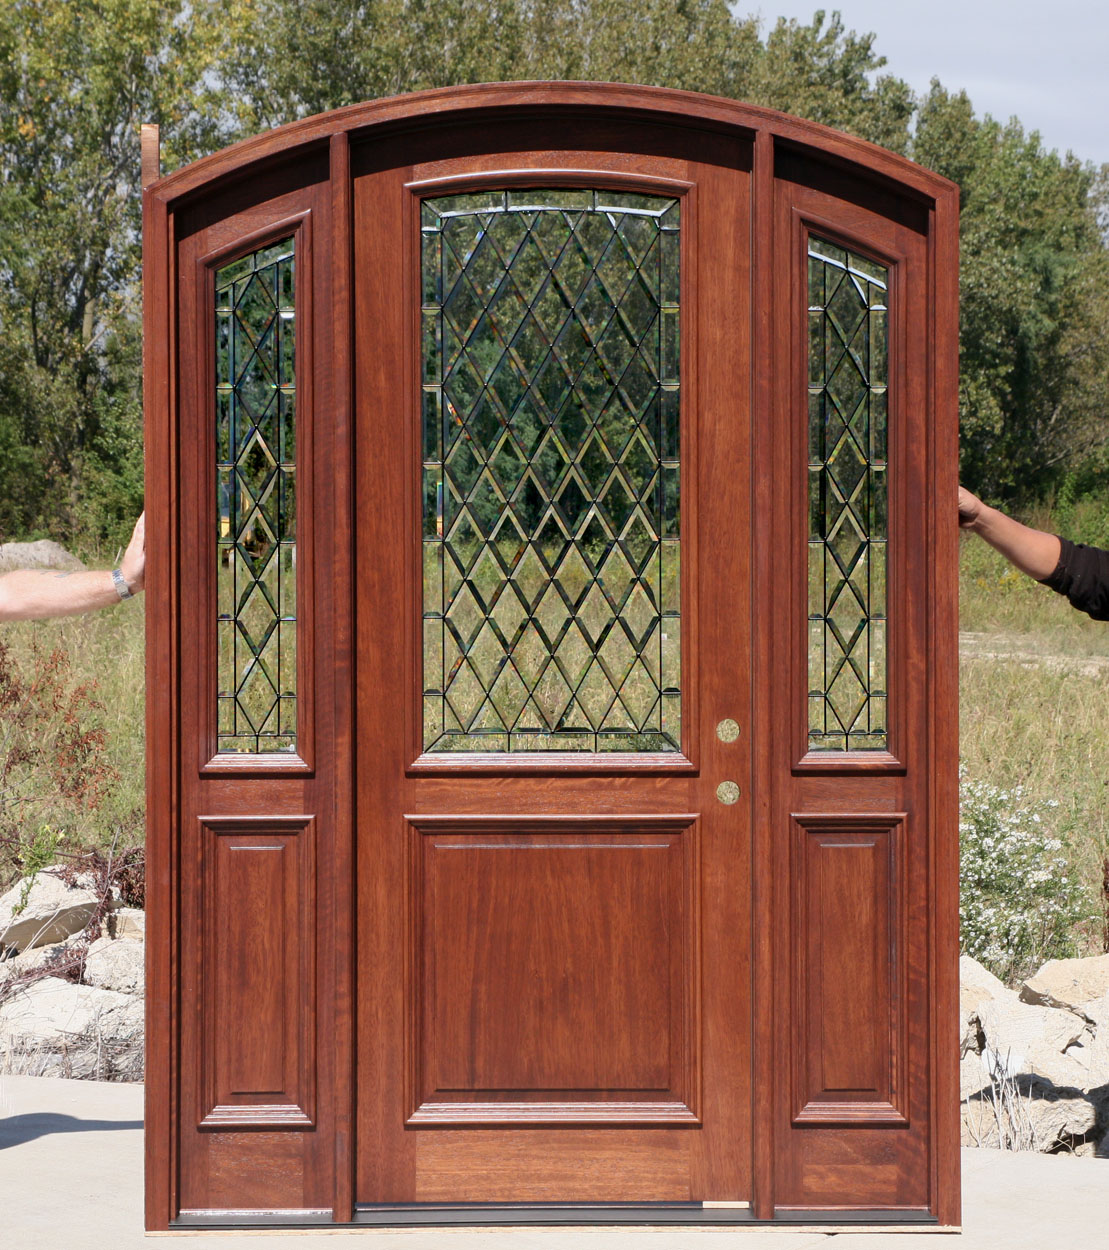 Arched Front Doors - Designer Series & Arch Top Doors - Bellagio Mahogany Doors Collection